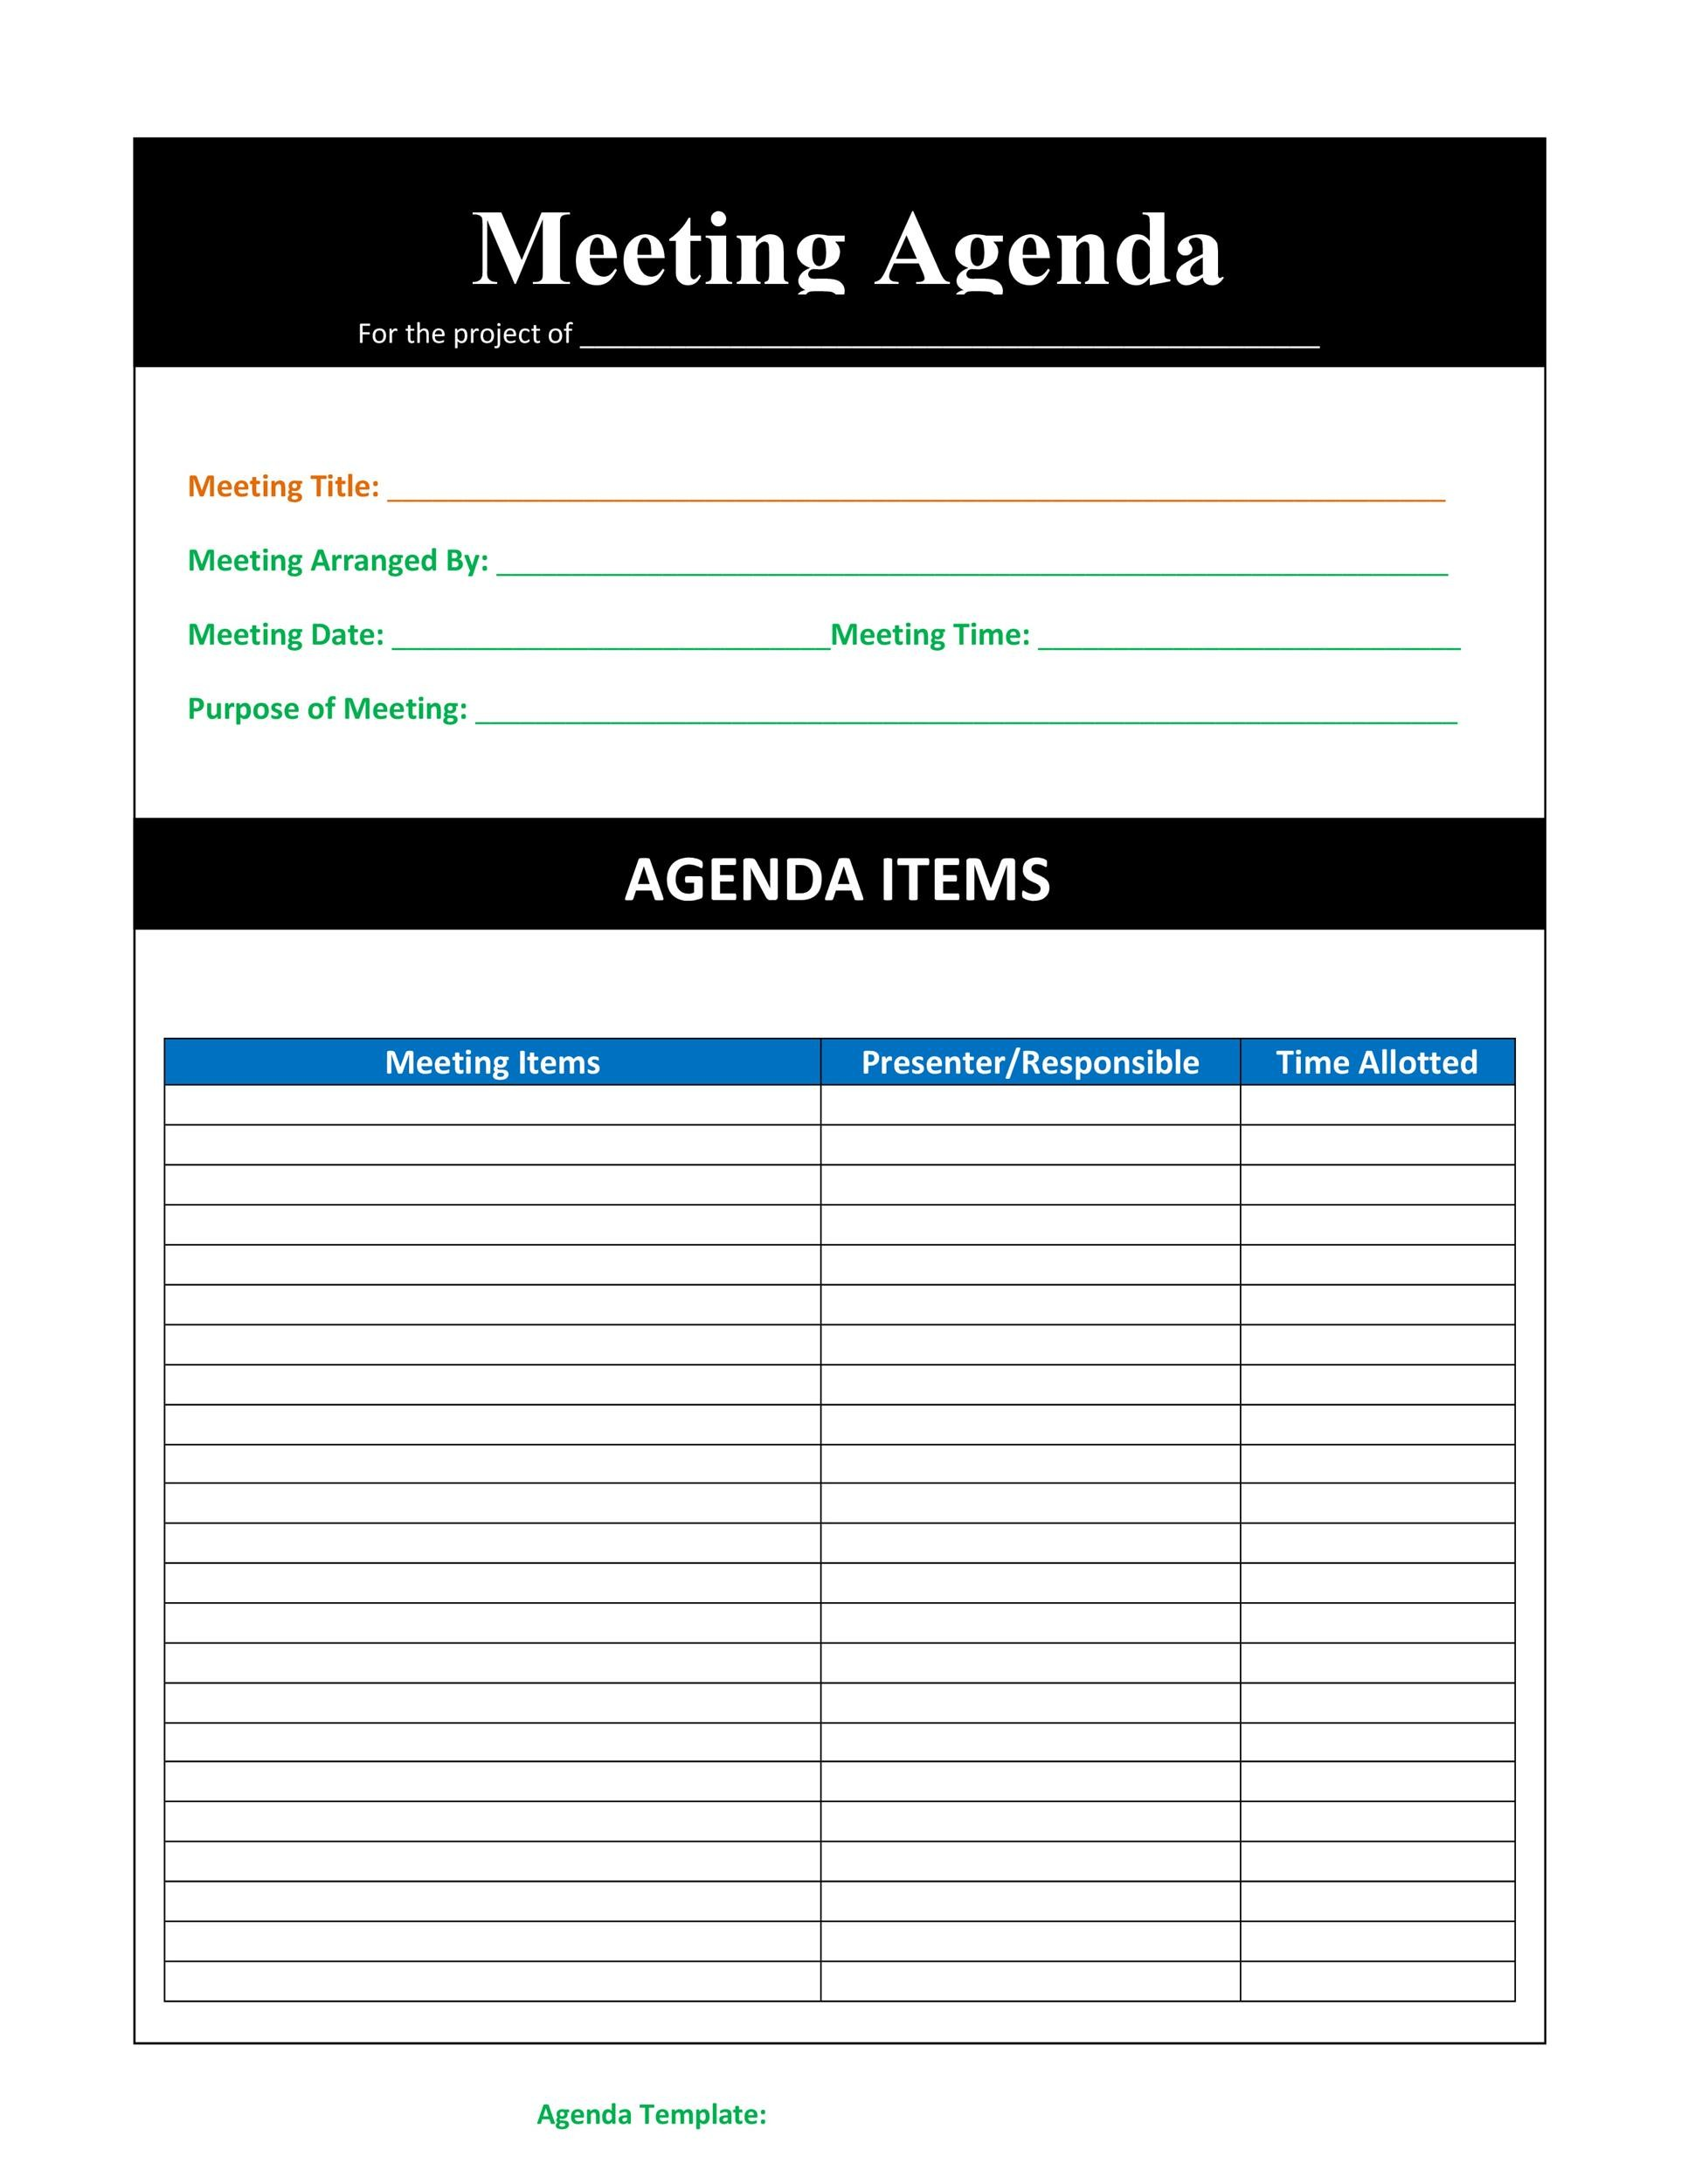 Meeting Agenda Template 41